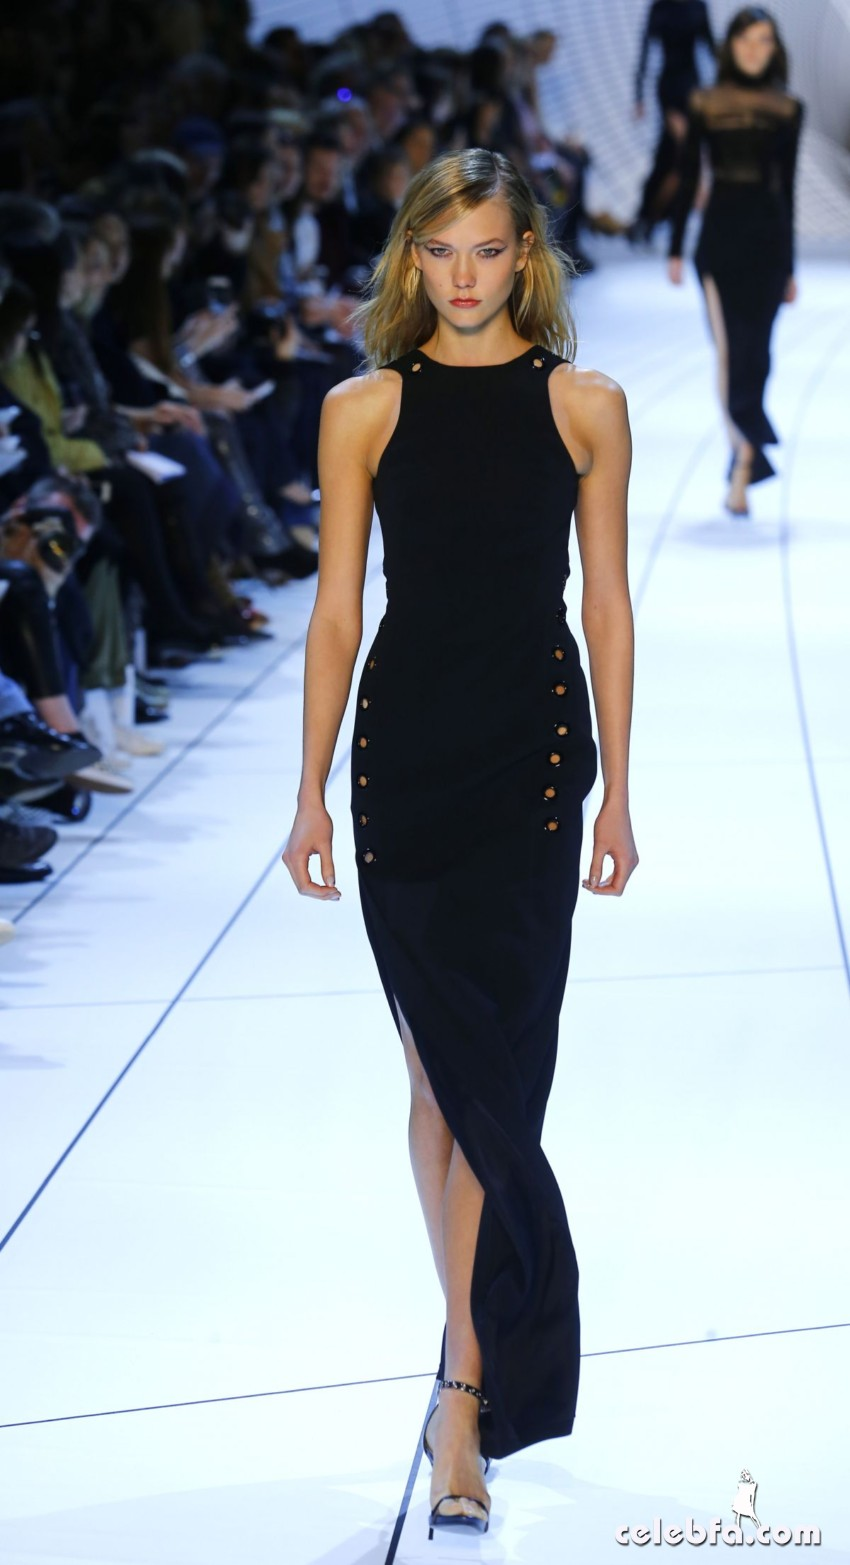 karlie-kloss-at-mugler-fashion-show-in-paris (2)